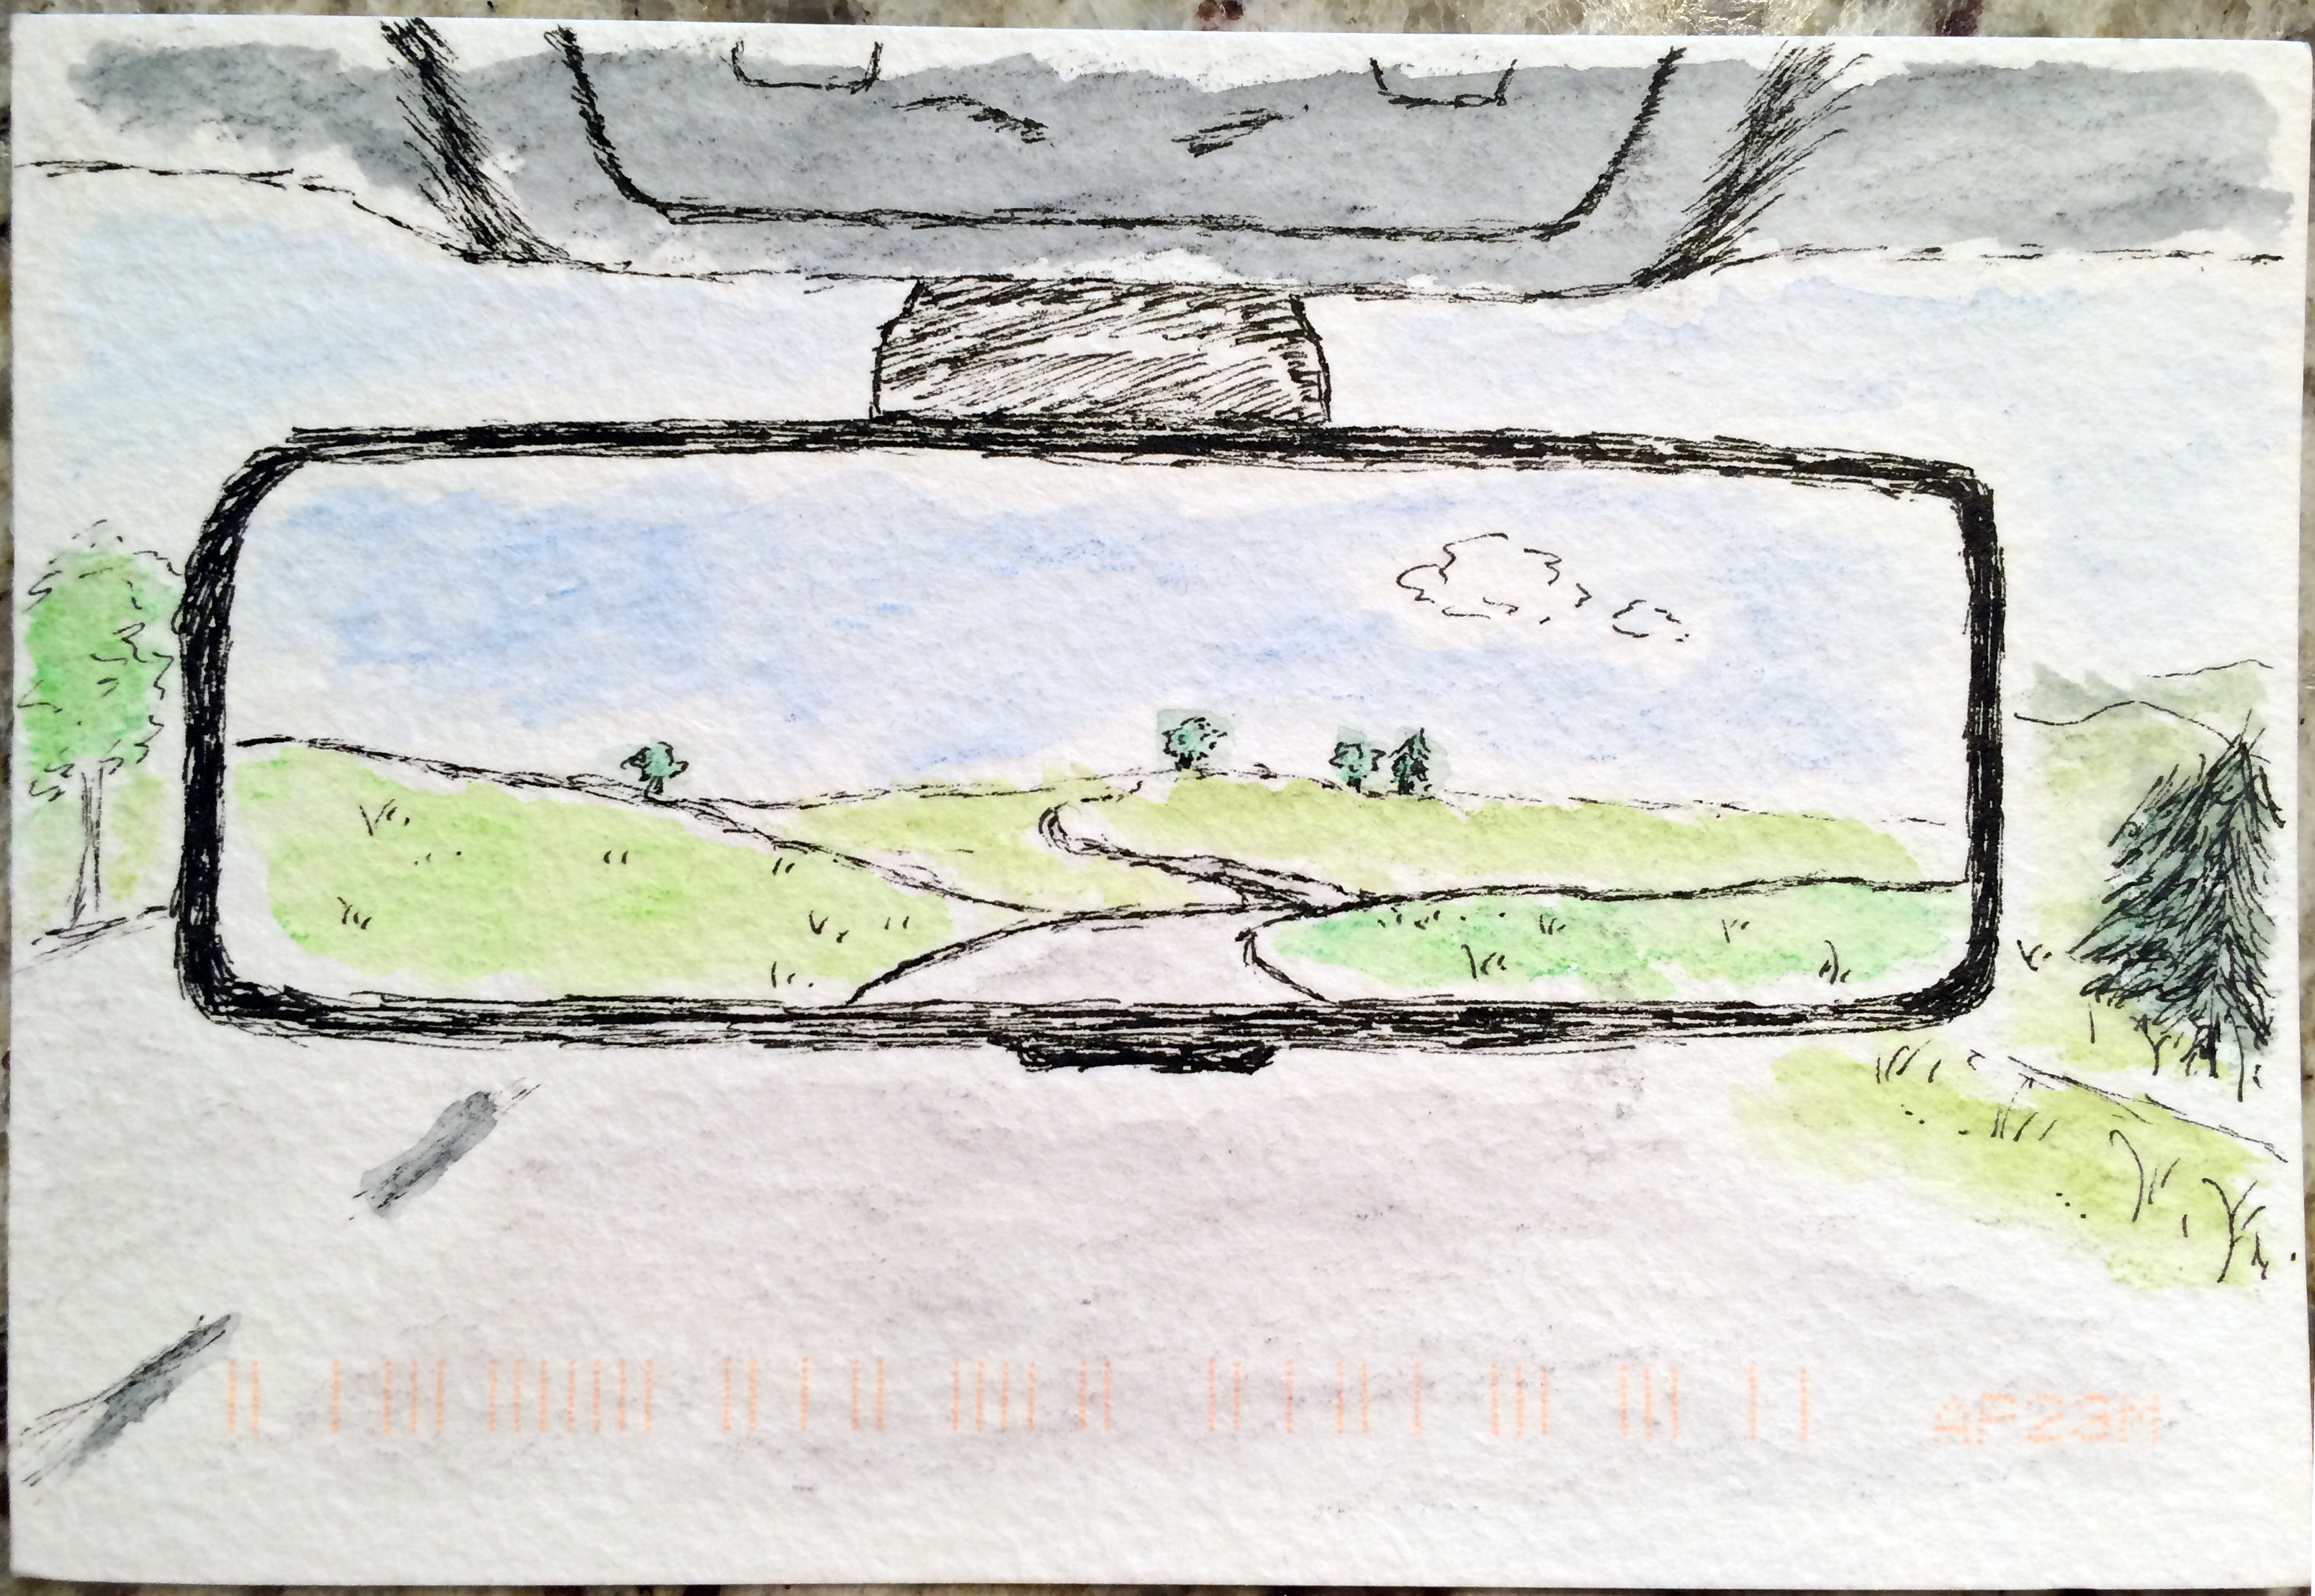 rear-view-mirror-drawing-32